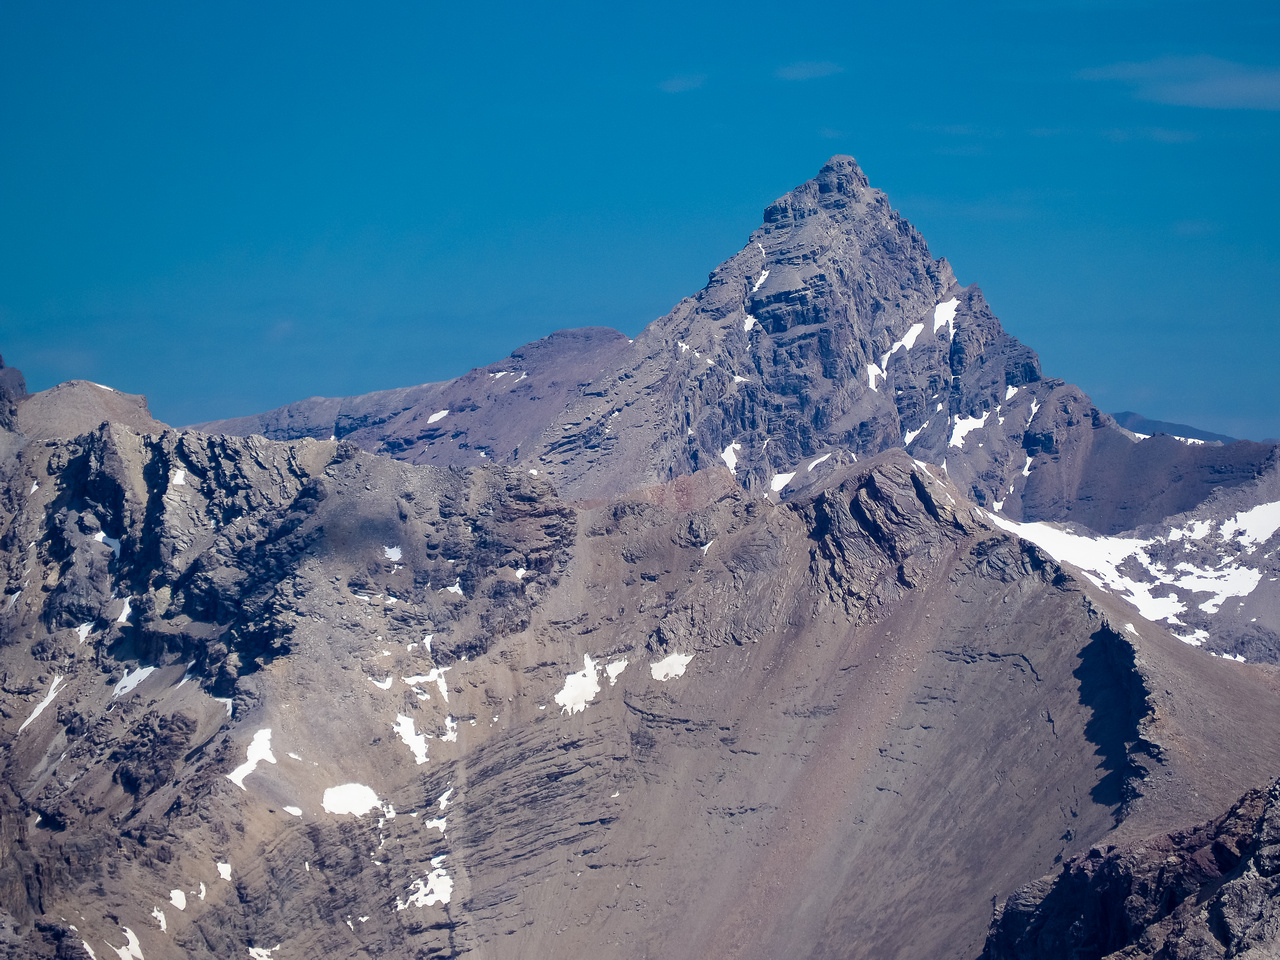 Sure - Recondite is an 11,000' pile of collapsing scree but what a gorgeous pile of scree it is!